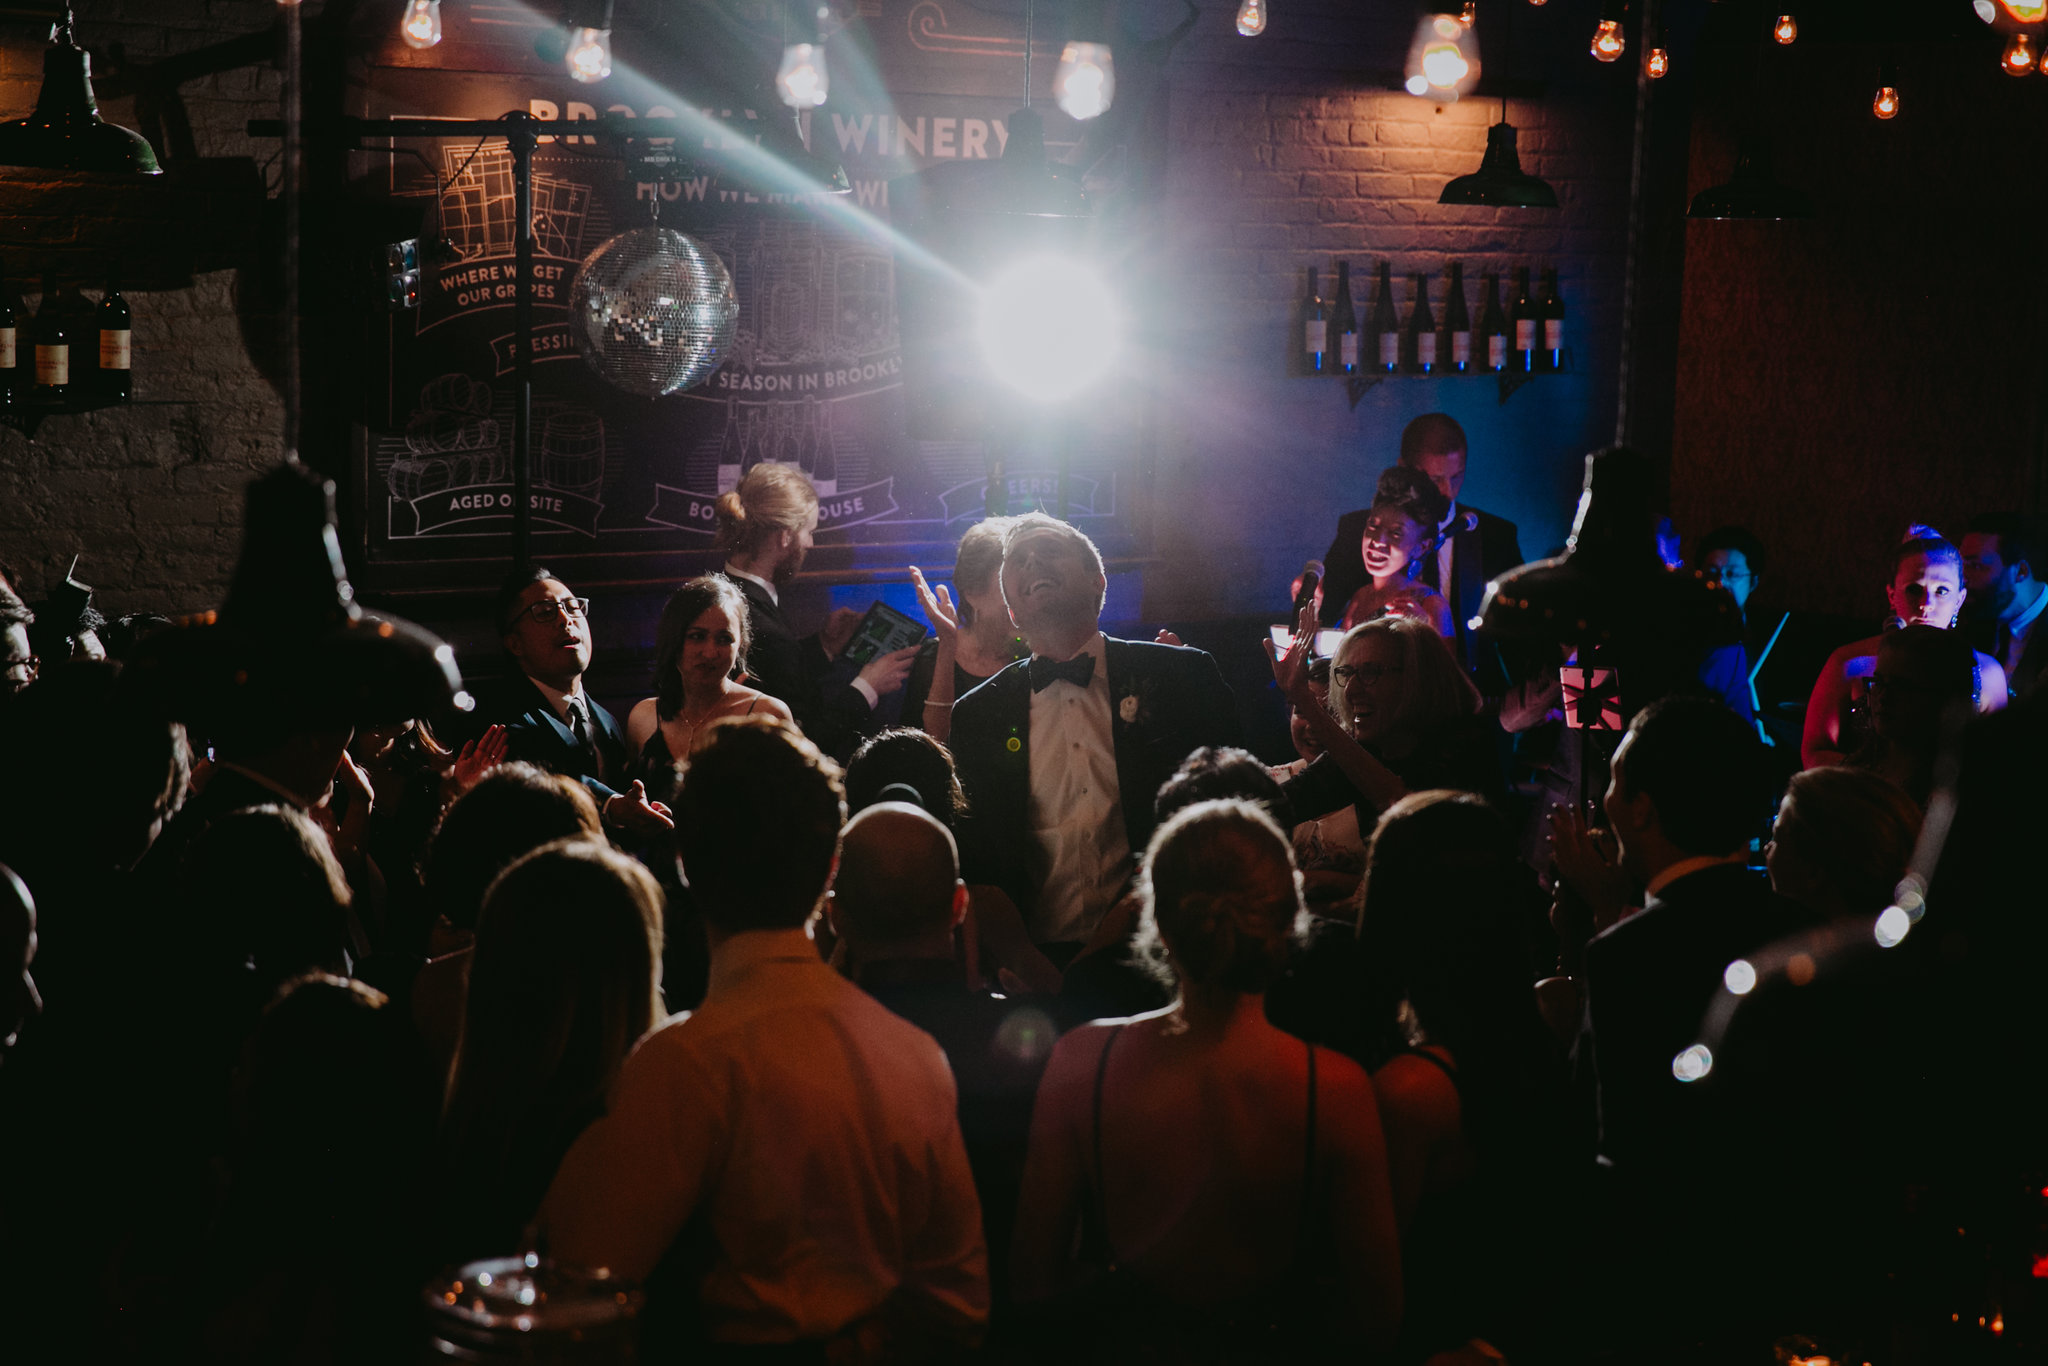 Brooklyn_Winery_Wedding_Chellise_Michael_Photography0888.JPG